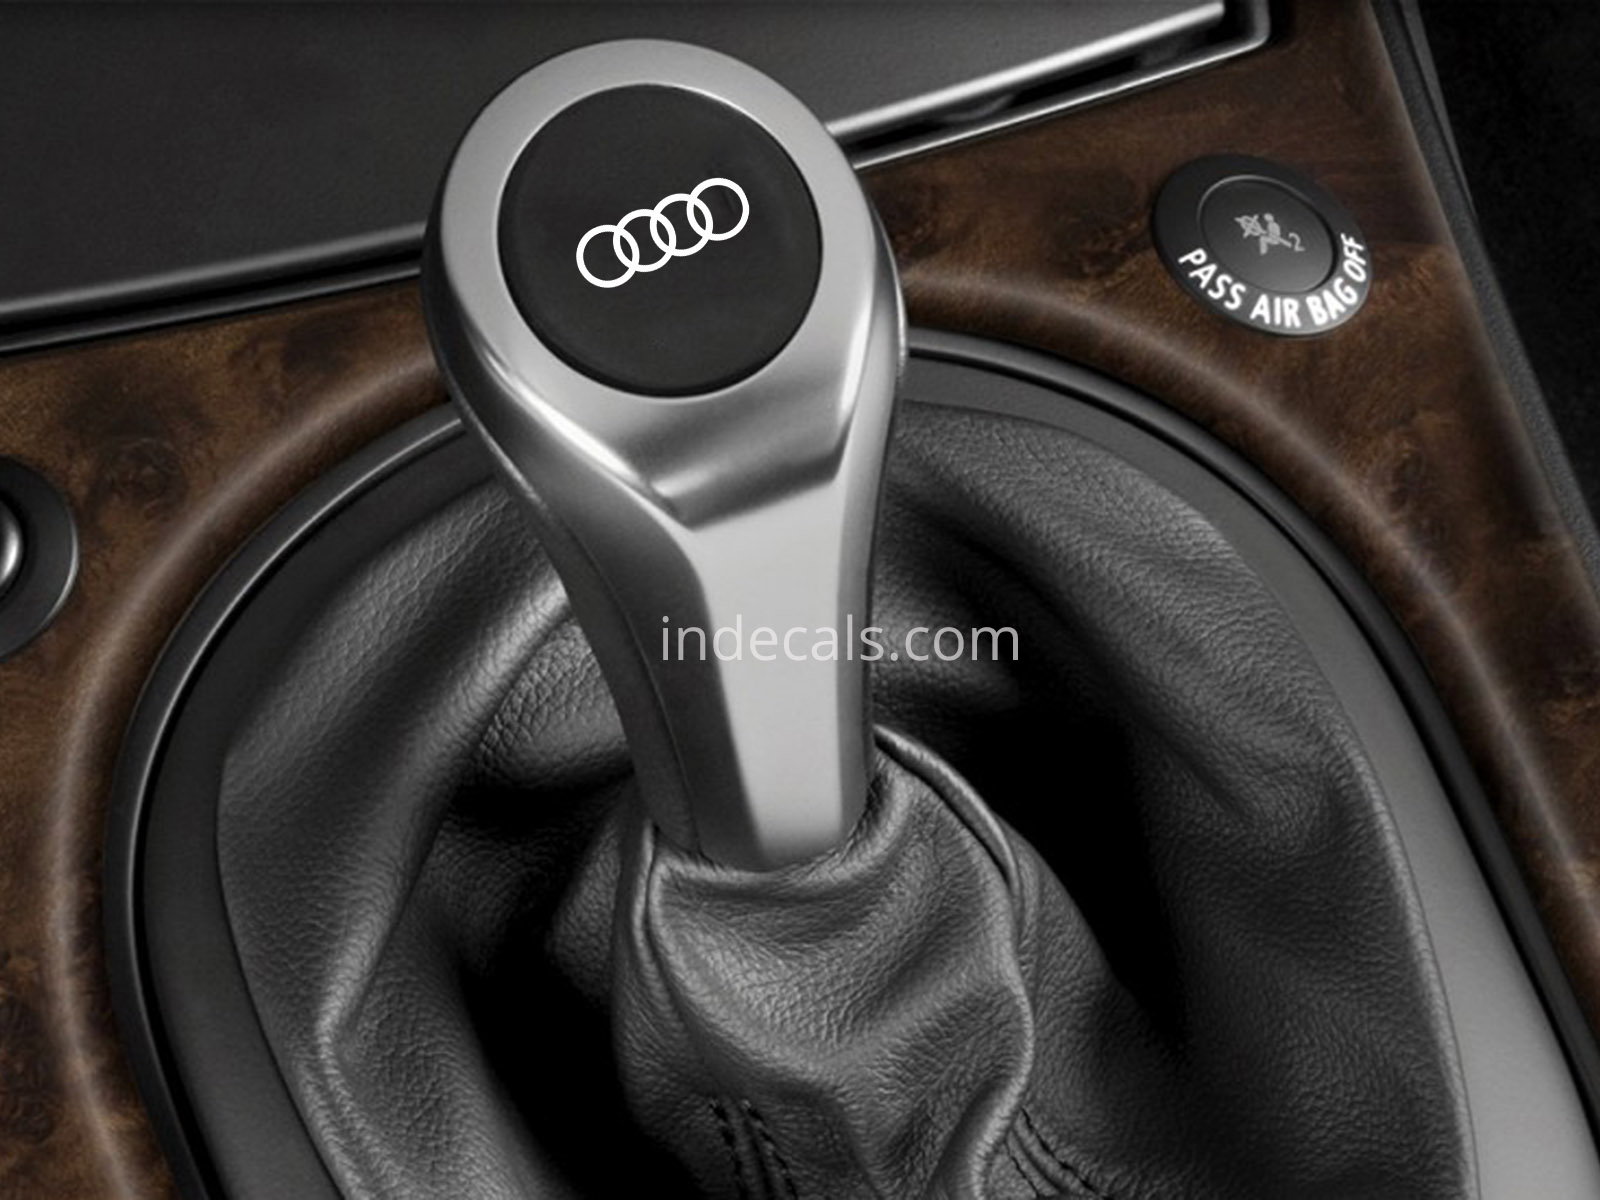 3 x Audi Rings Stickers for Gear Knob - White